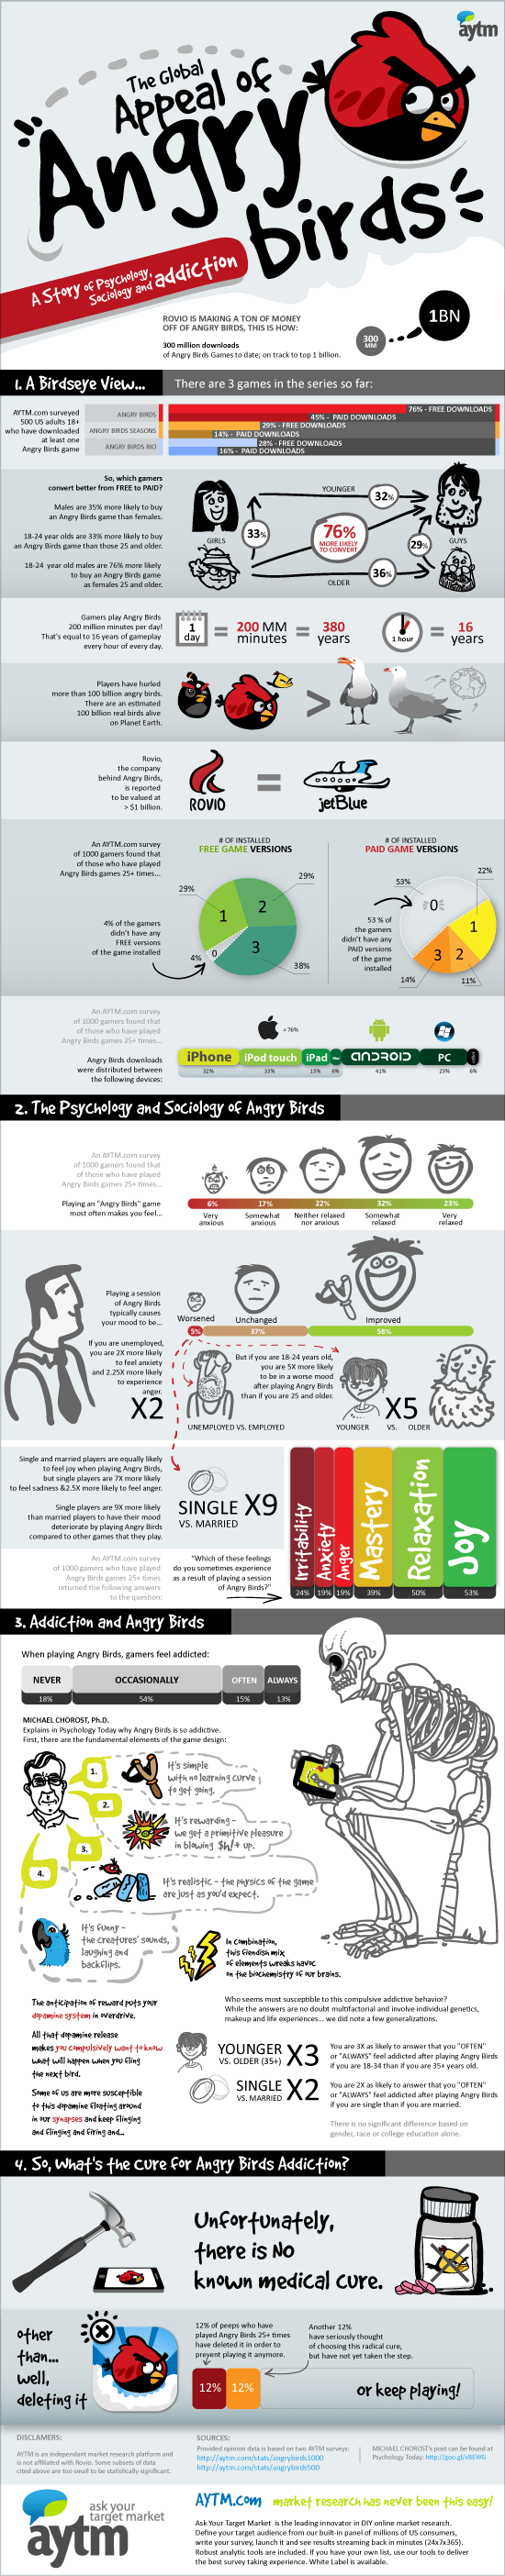 Angry Birds Addiction Infographic | AYTM